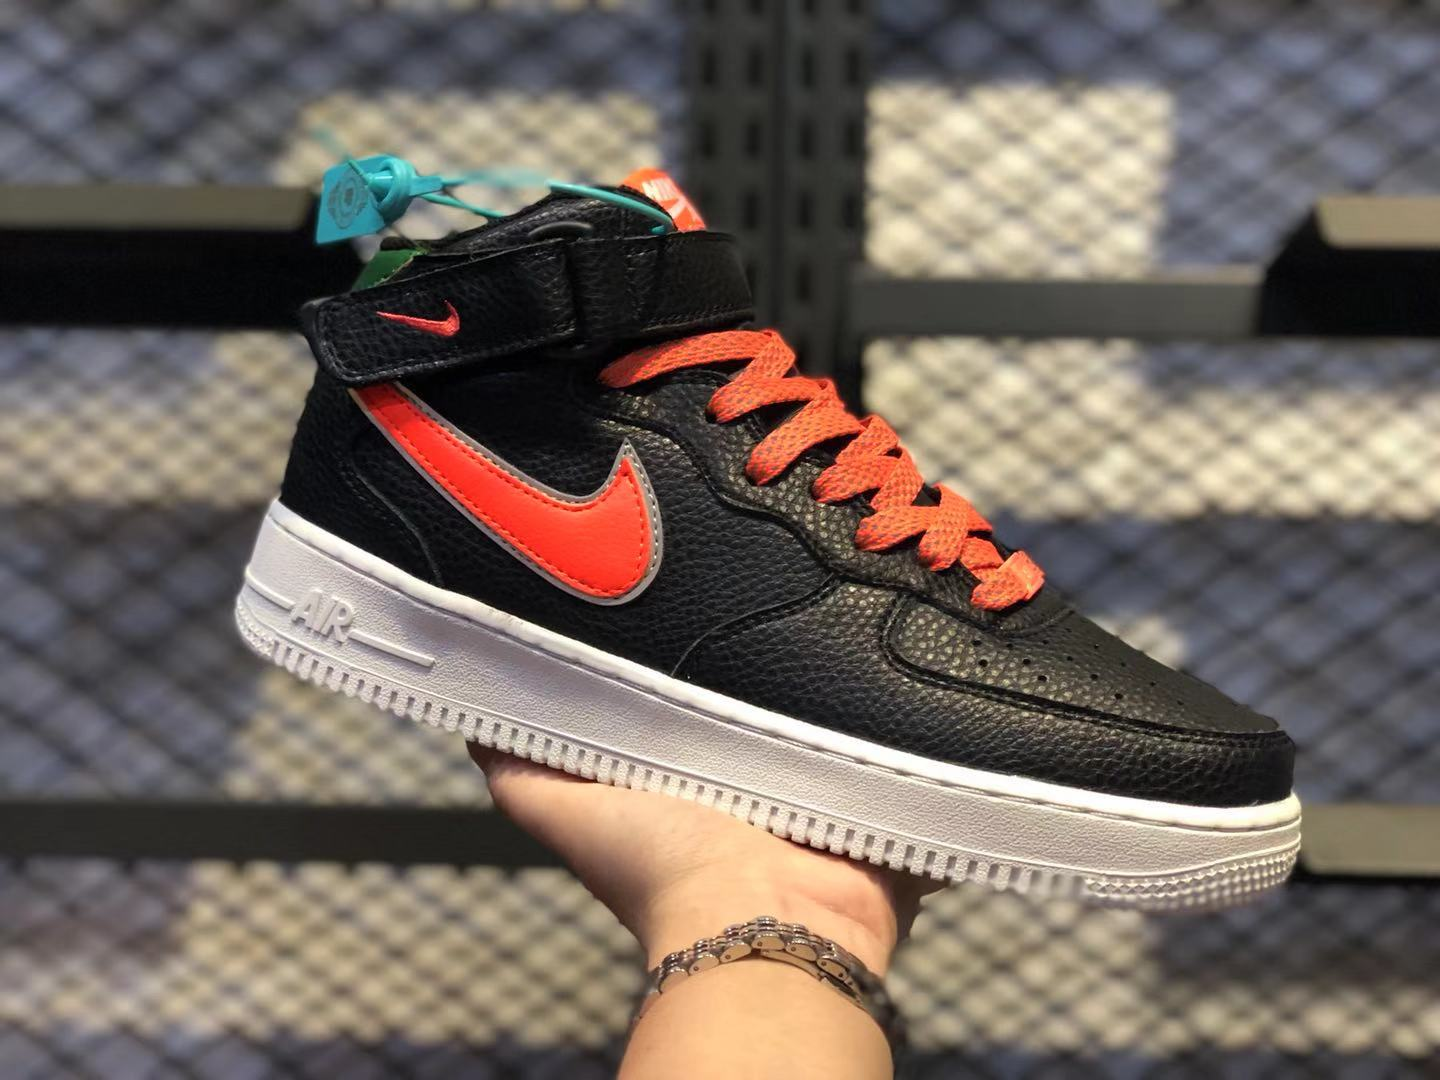 Nike Air Force 1 Mid Black/Gym Red Most Popular Men's Sneakers CJ6106-105